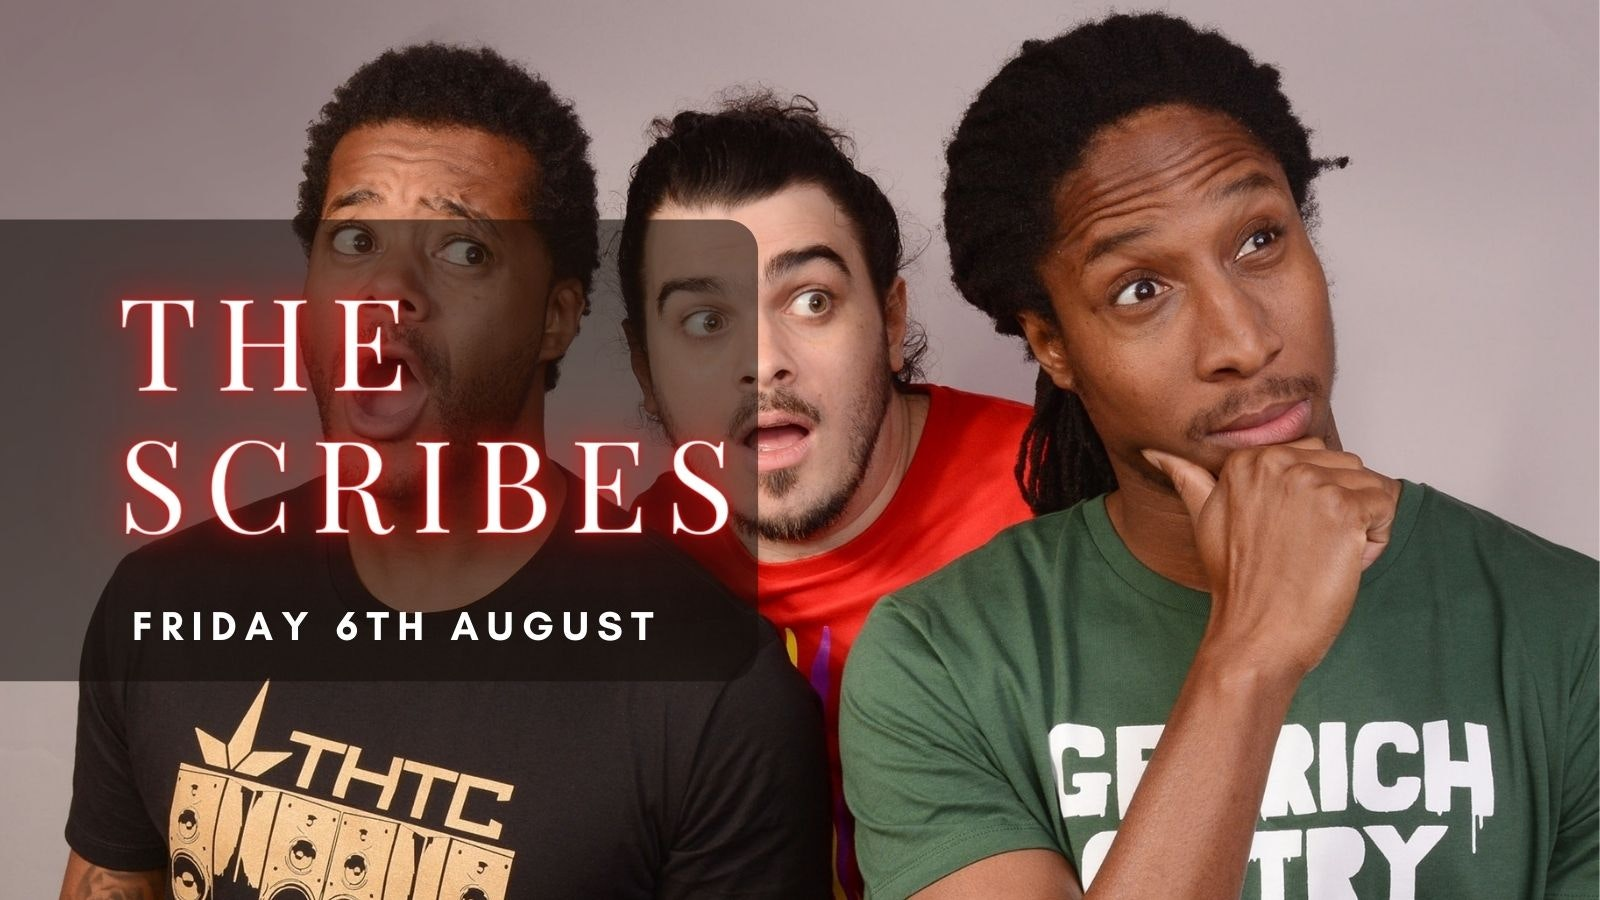 THE SCRIBES   Plymouth, Annabel's Cabaret & Discotheque